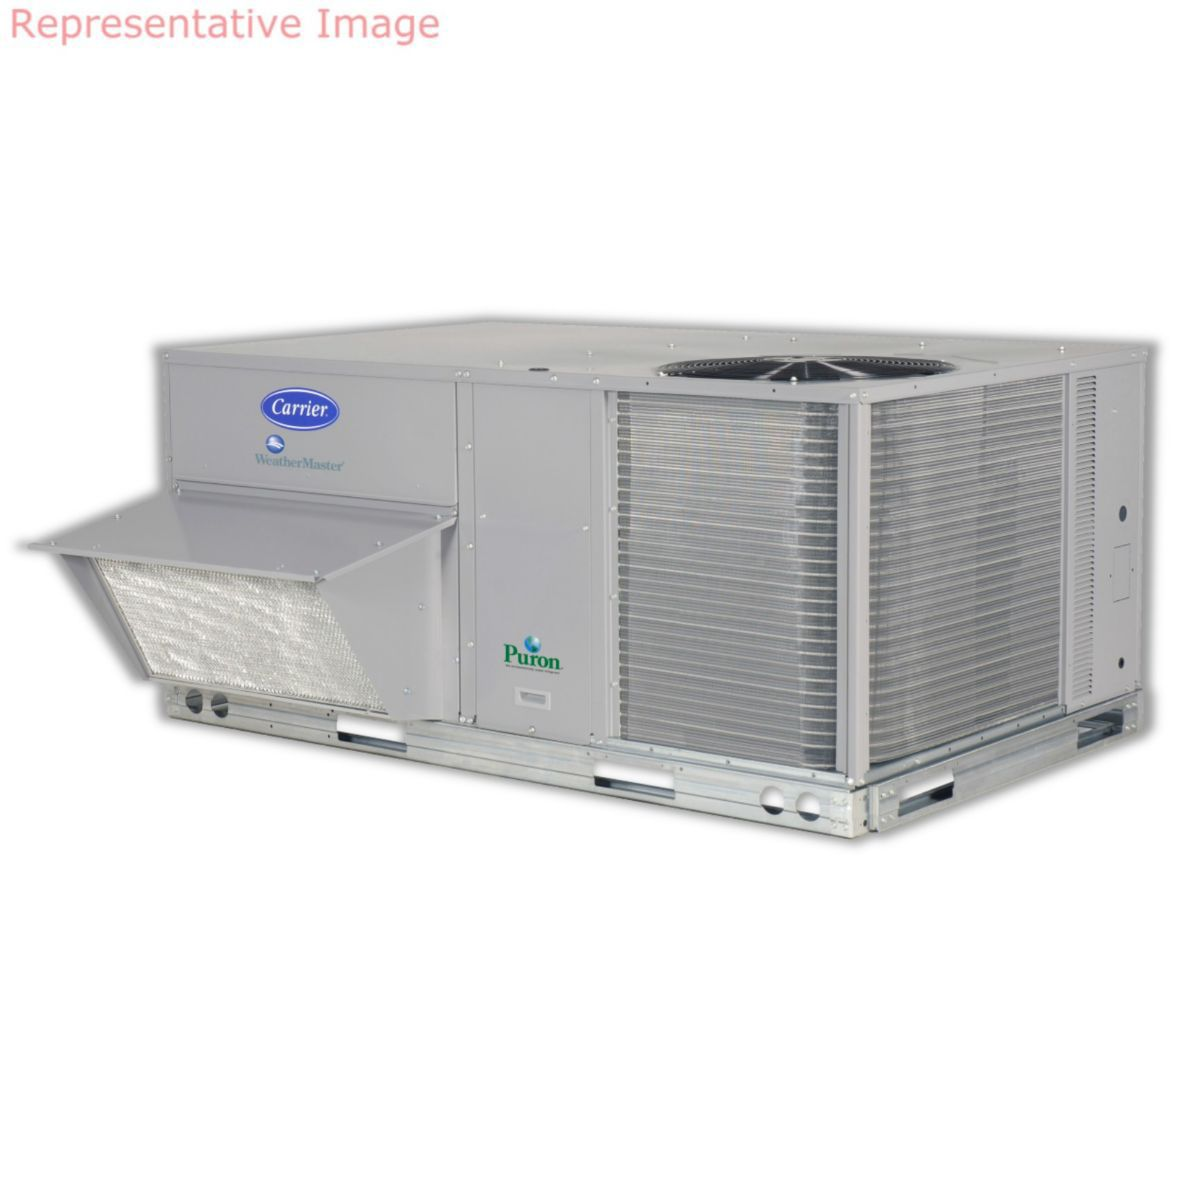 Carrier® WeatherMaster® - 10 Ton Commercial Packaged Rooftop